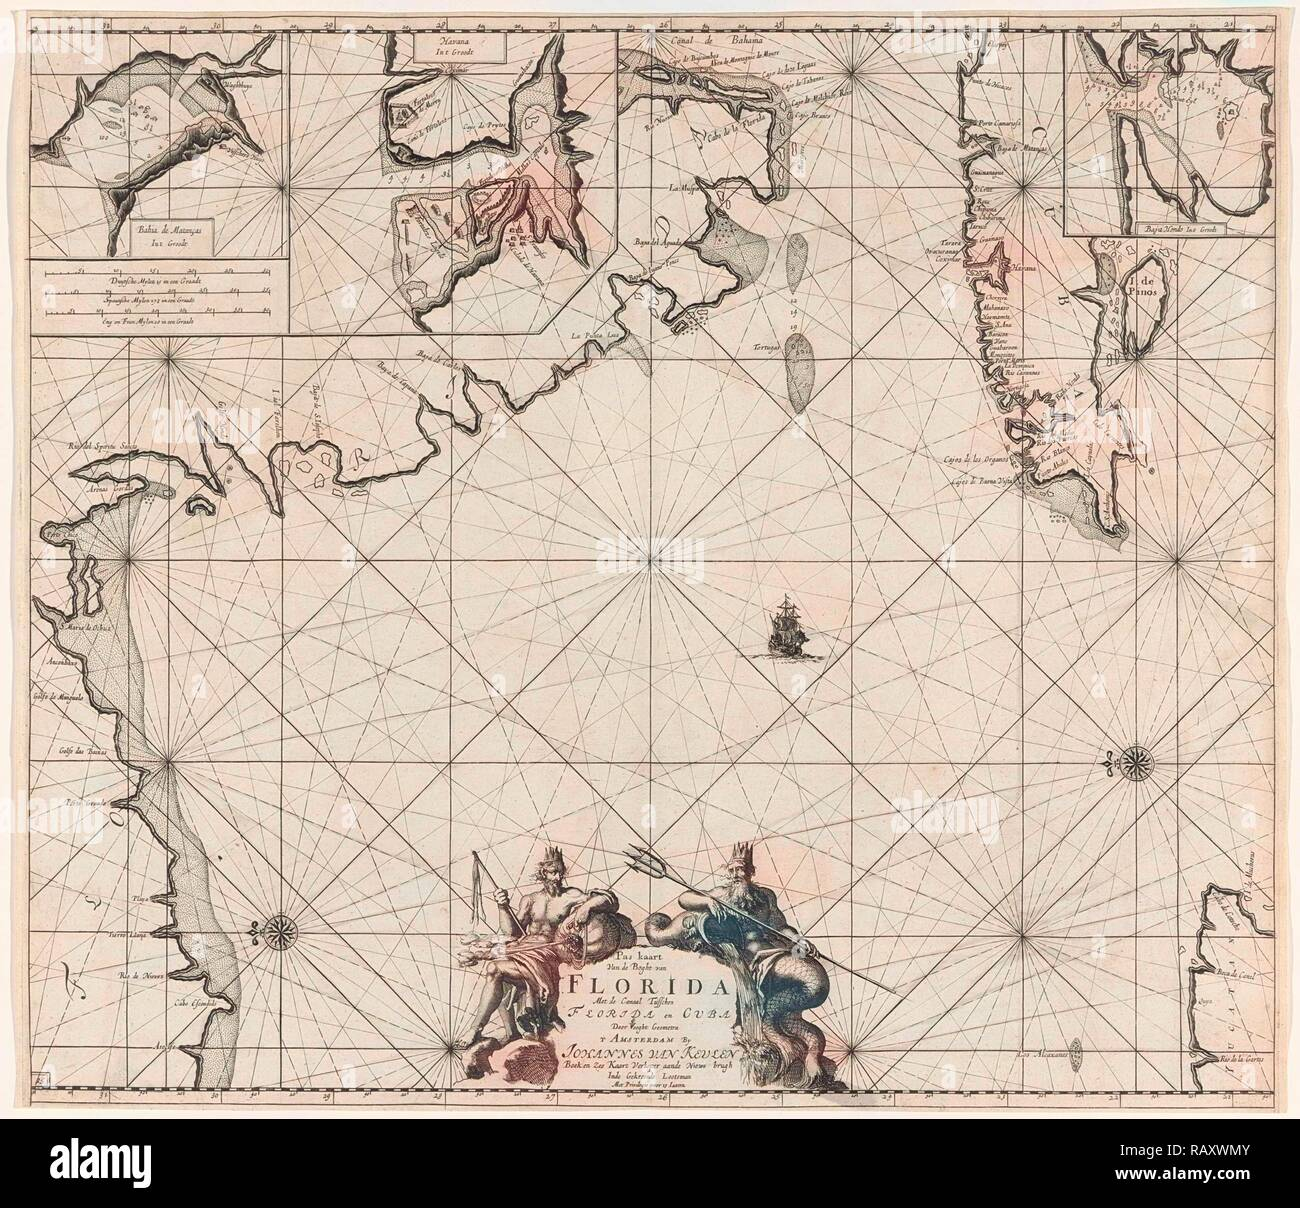 Sea chart of part of the Gulf of Mexico, with the coast of Florida, Jan Luyken, Claes Jansz Voogt, Johannes van reimagined - Stock Image